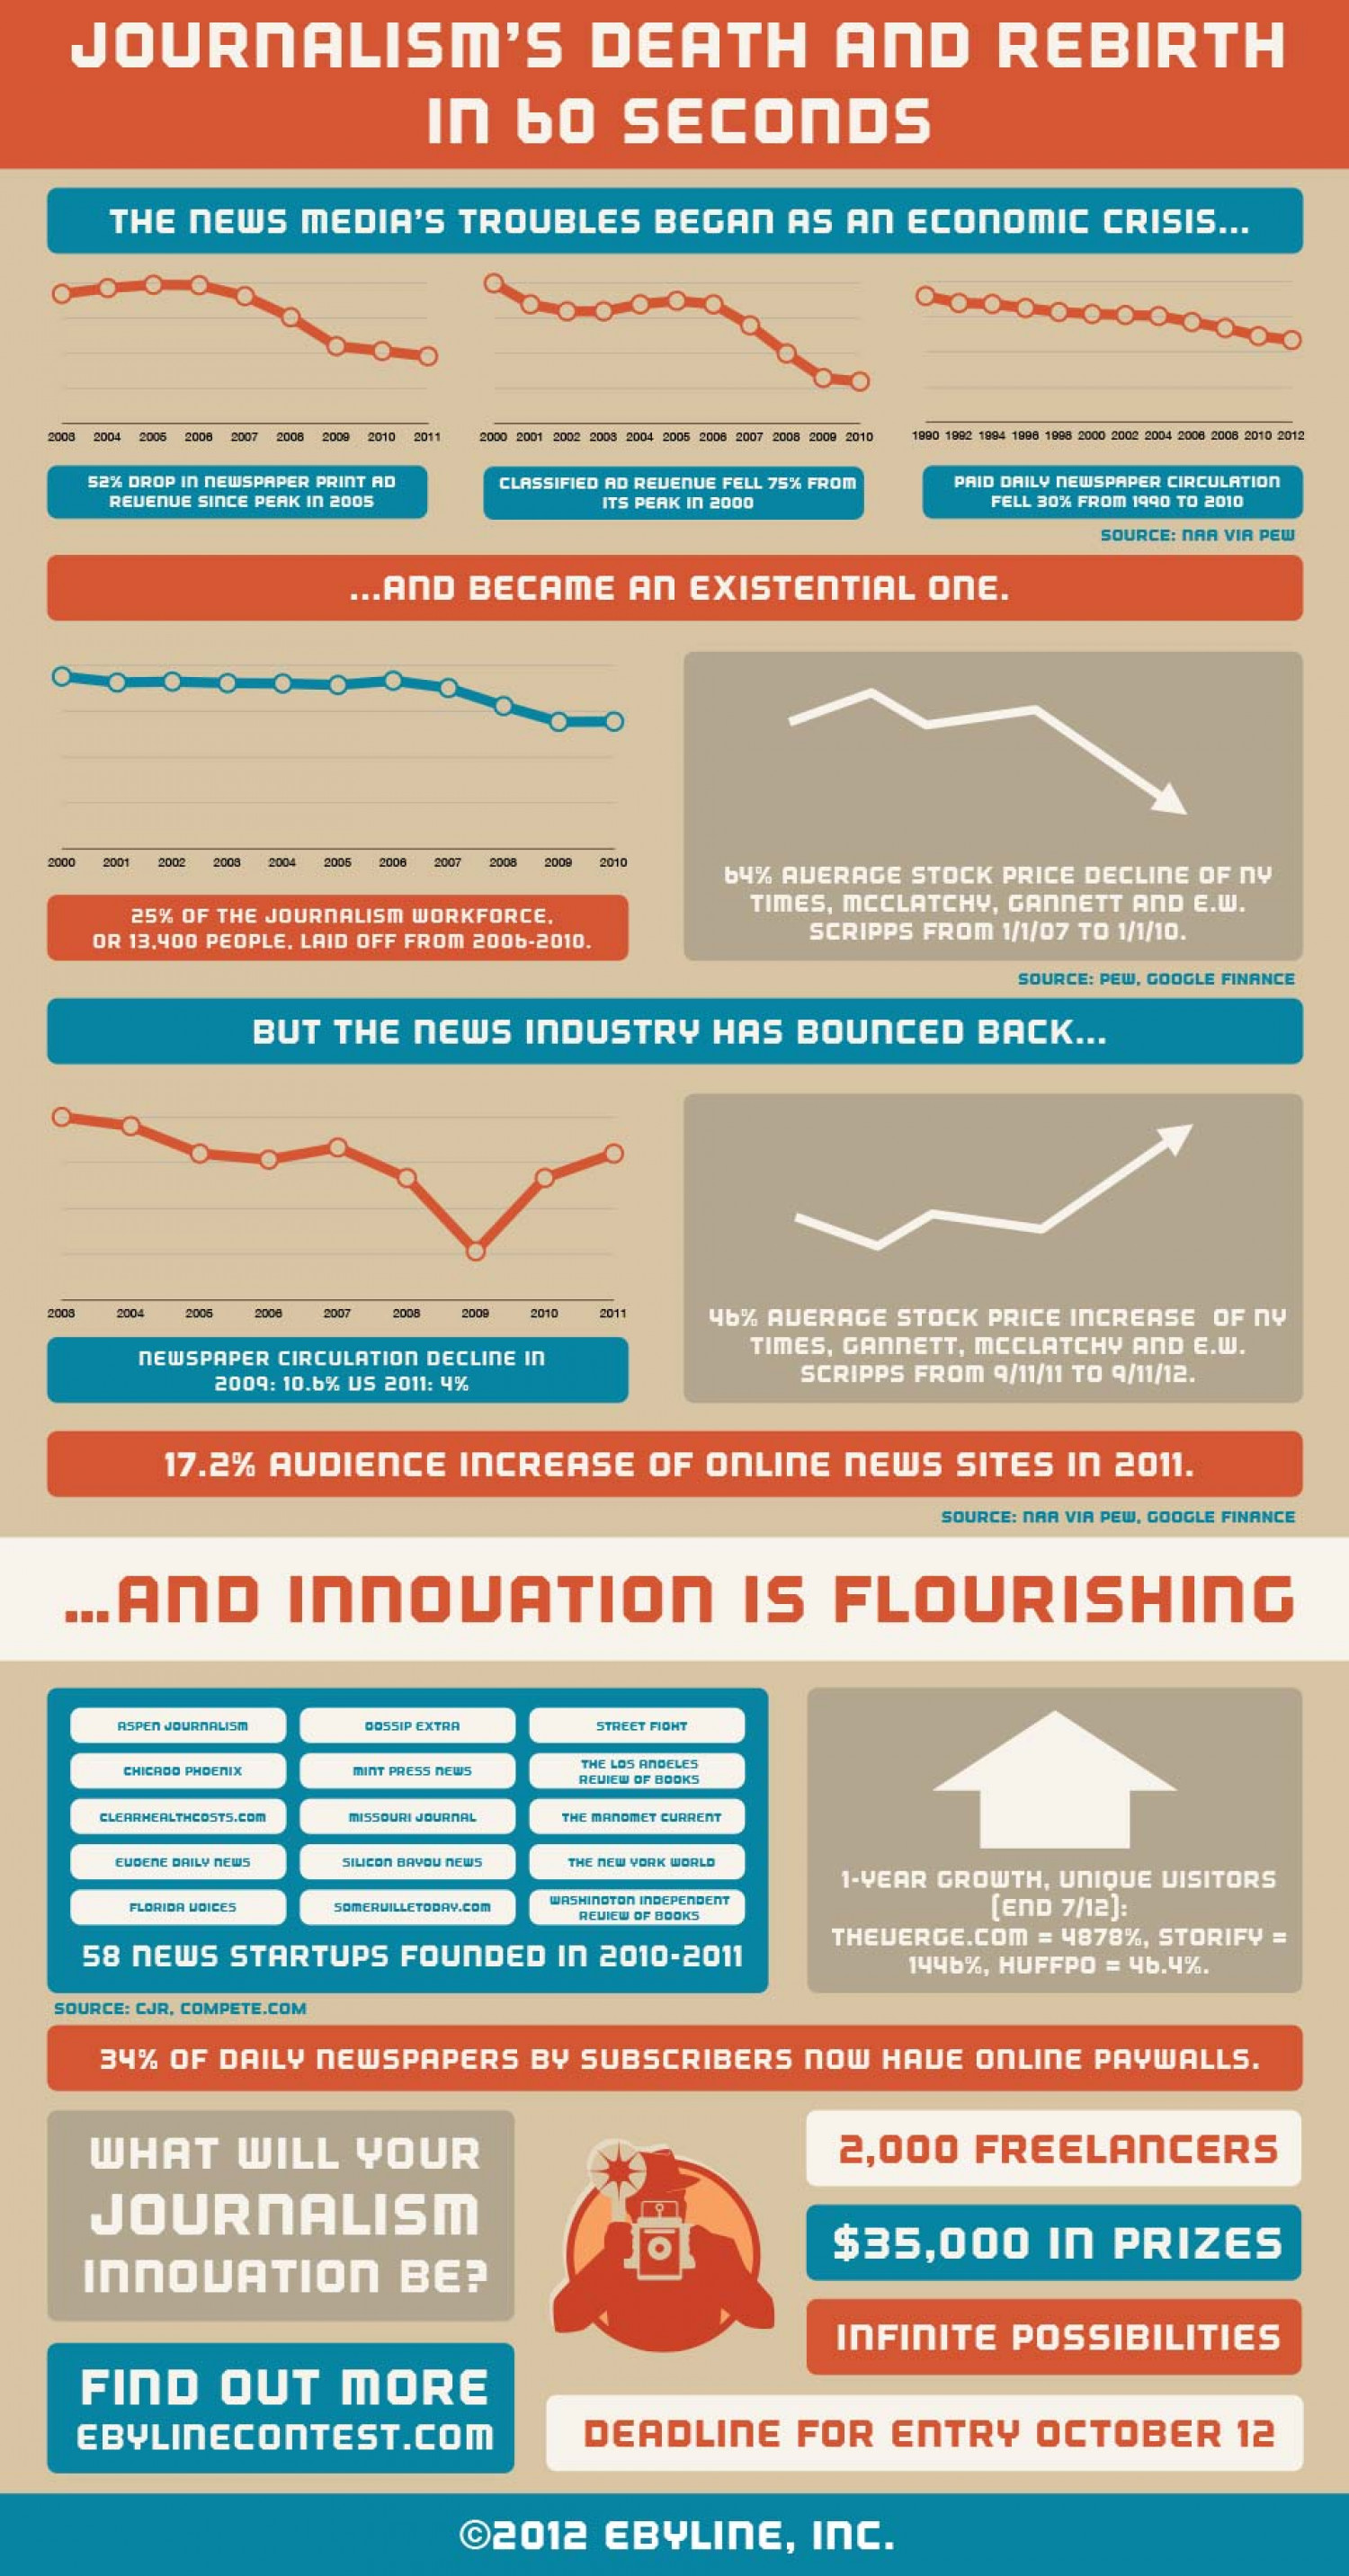 Journalism's death and rebirth in 60 seconds Infographic